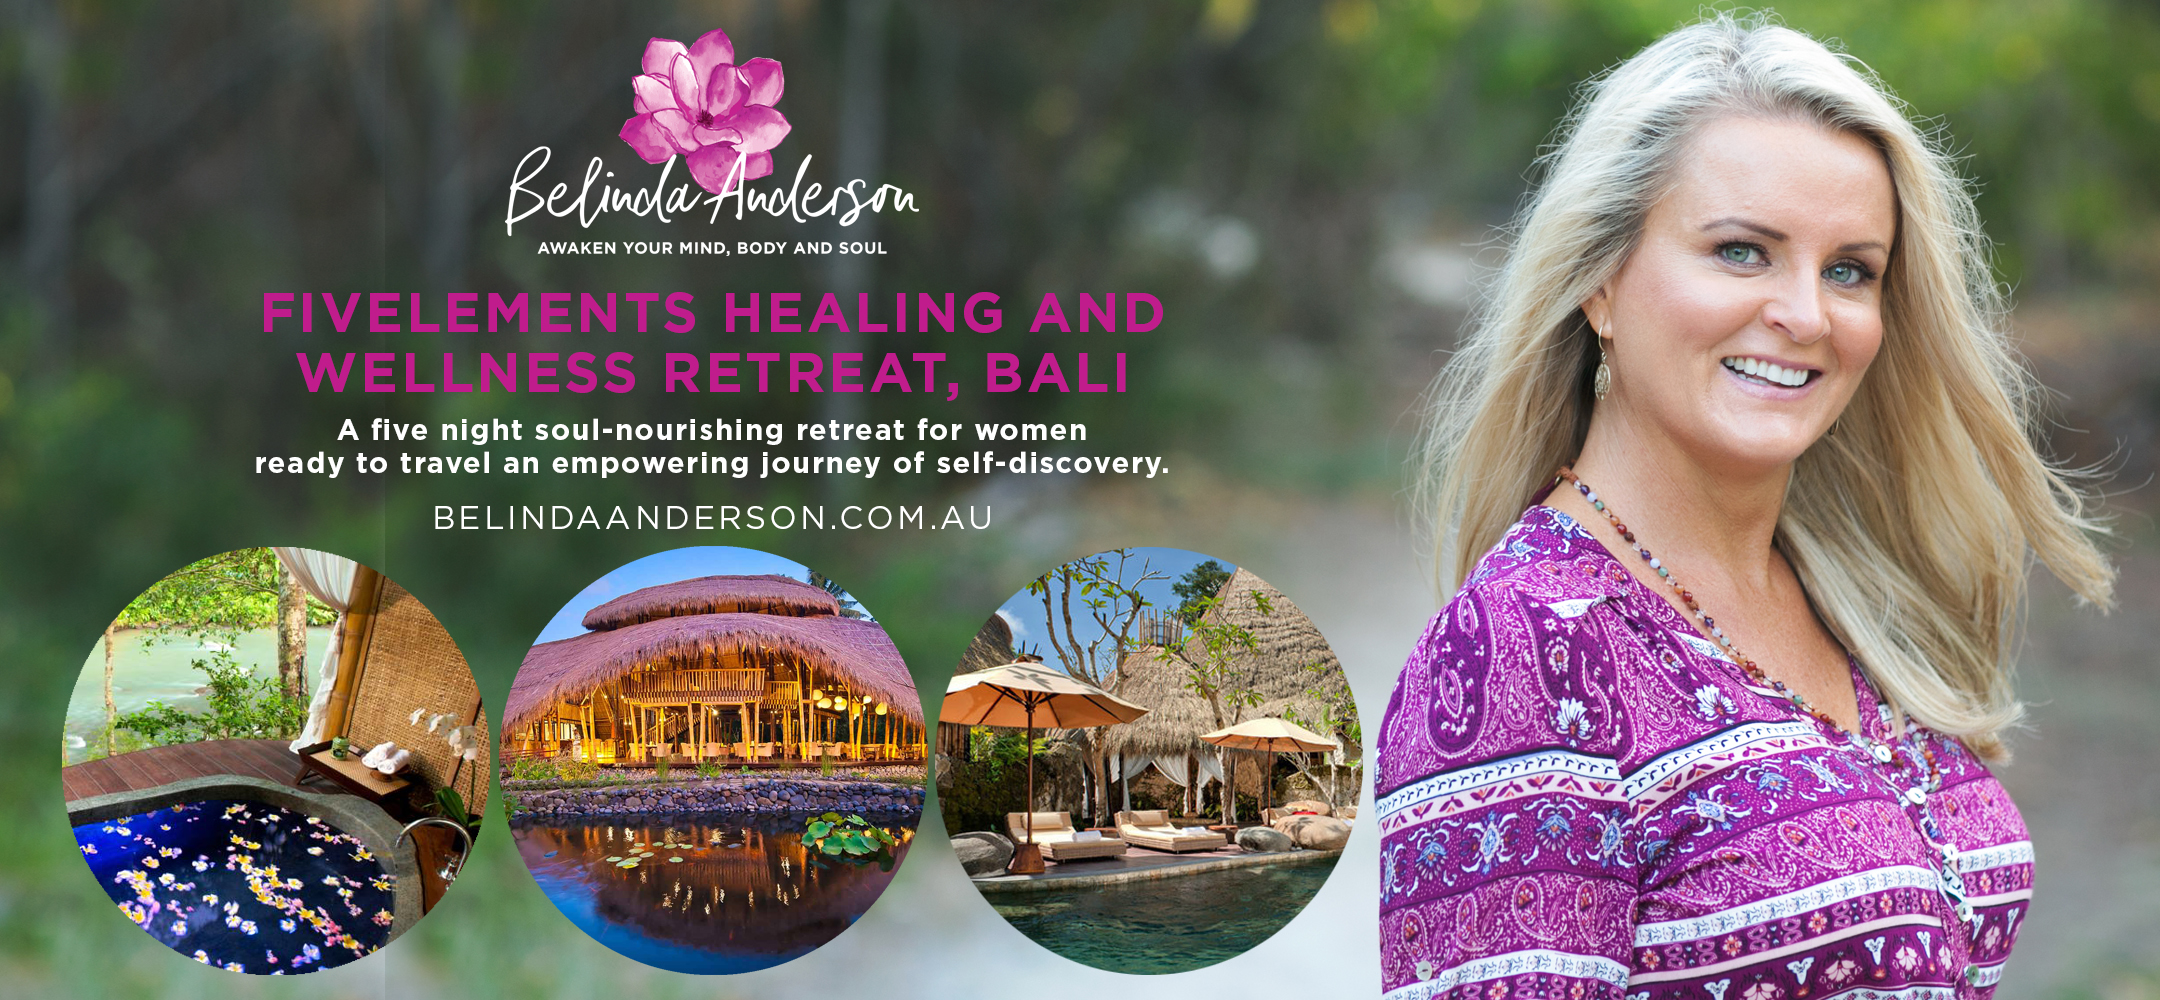 Fivelements Bali Retreat Empowering Women